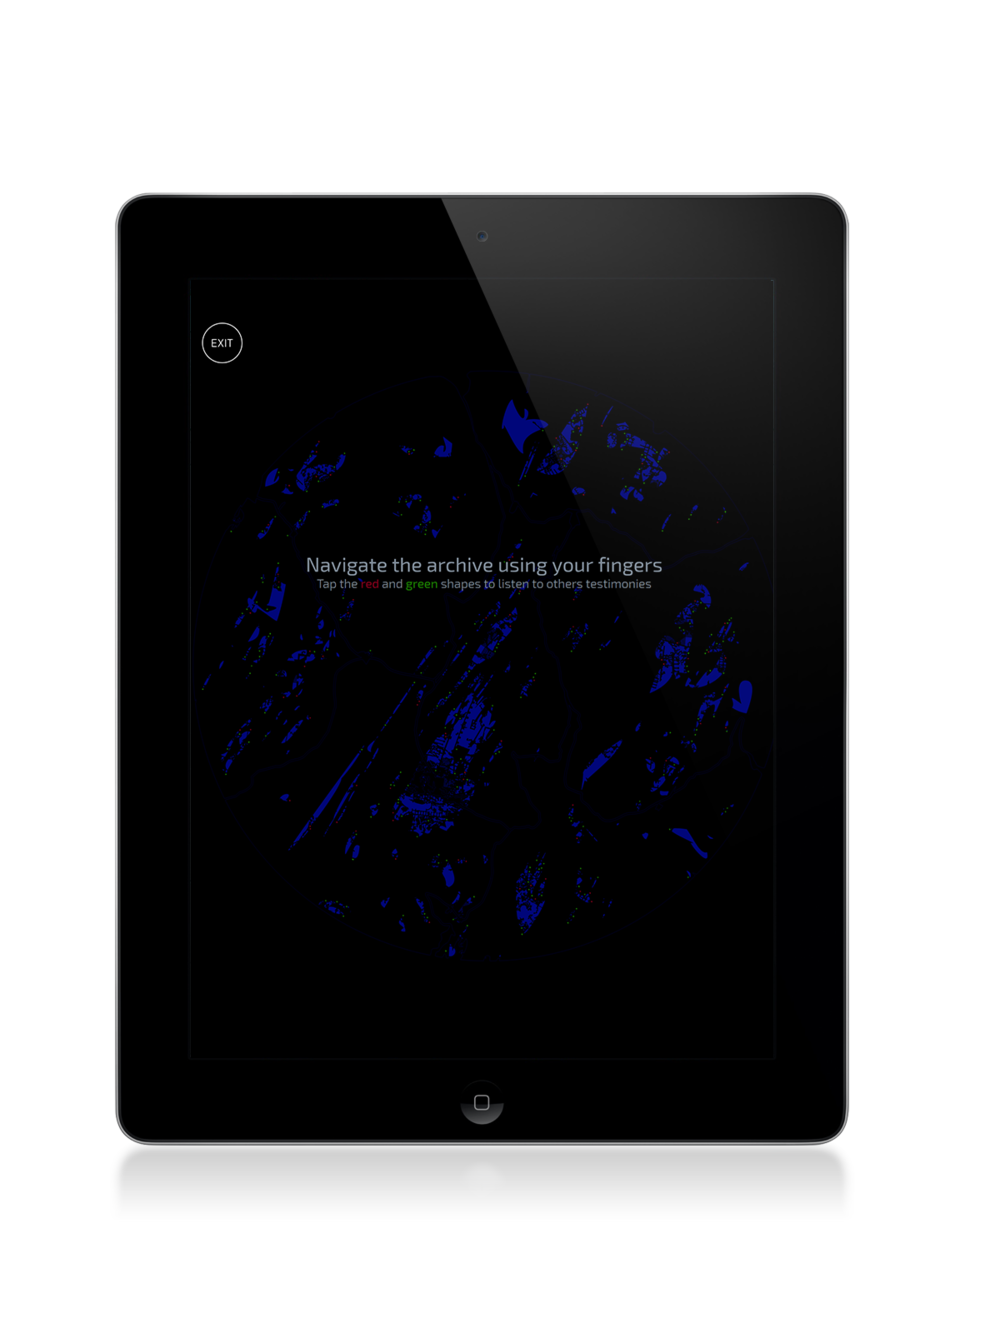 Dark Fractures - DF02 - WebApp Documentation - iPad screenshot